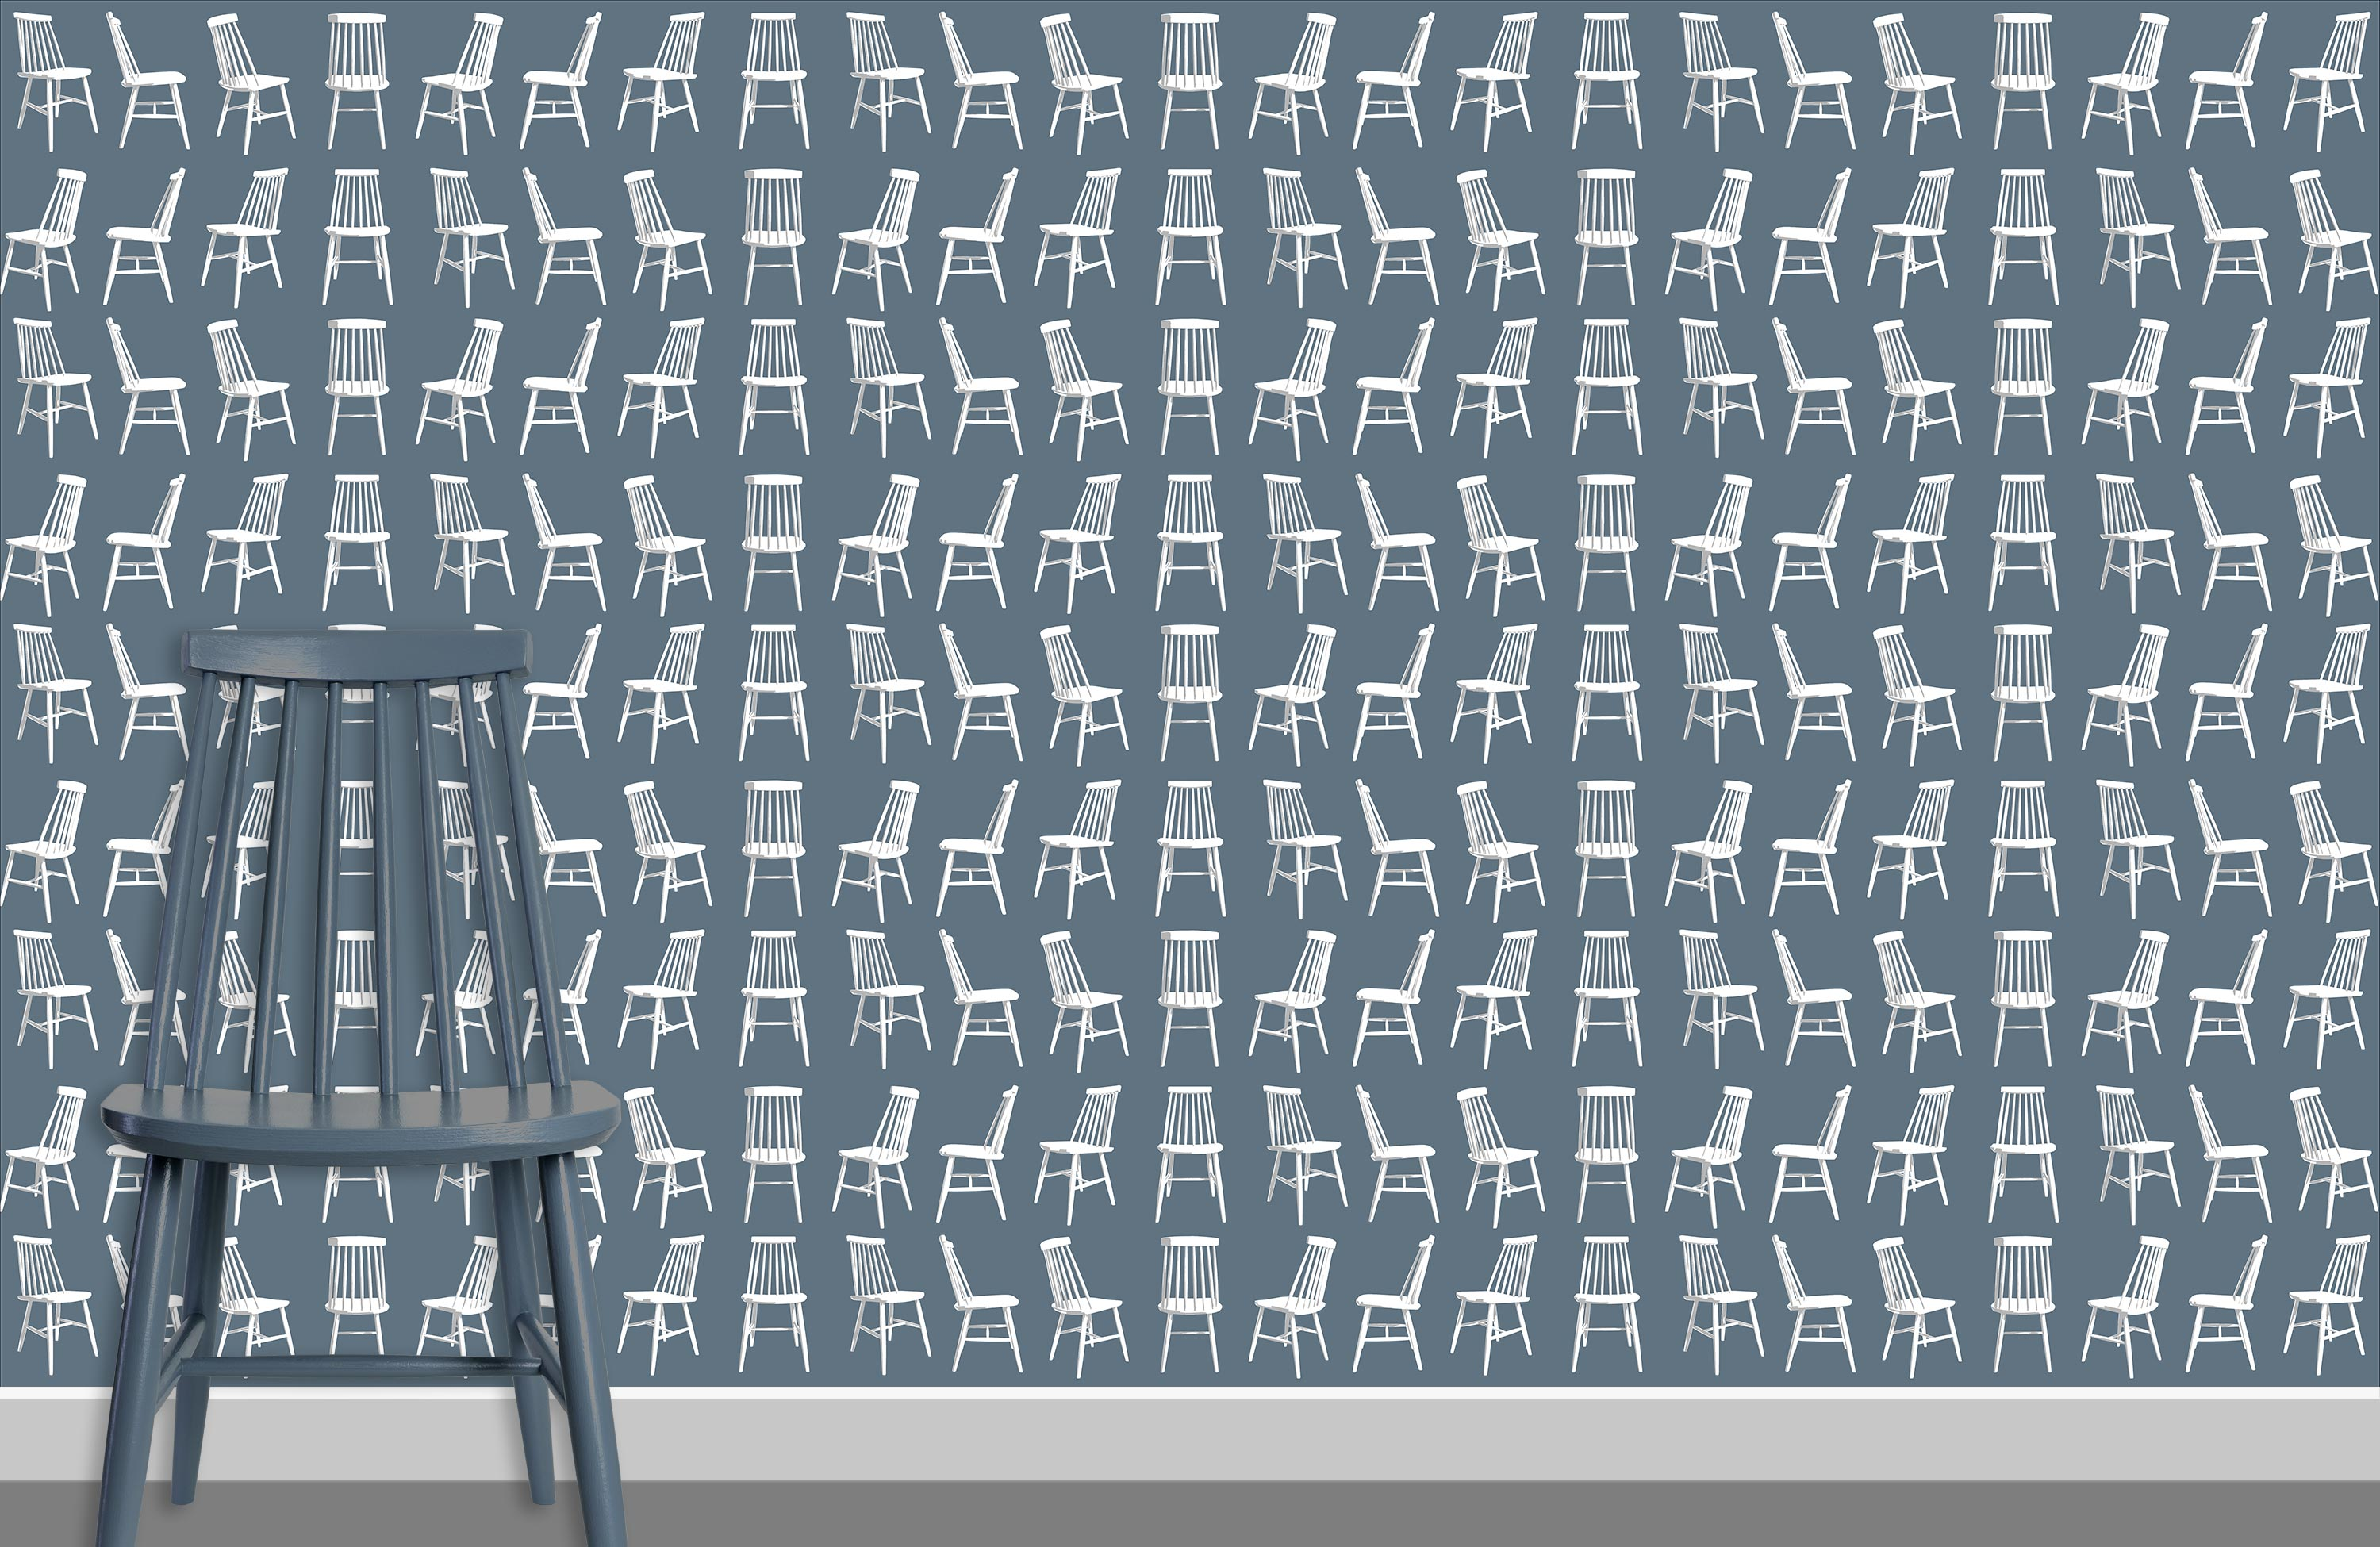 Mid Century Chairs Pattern G 3CD